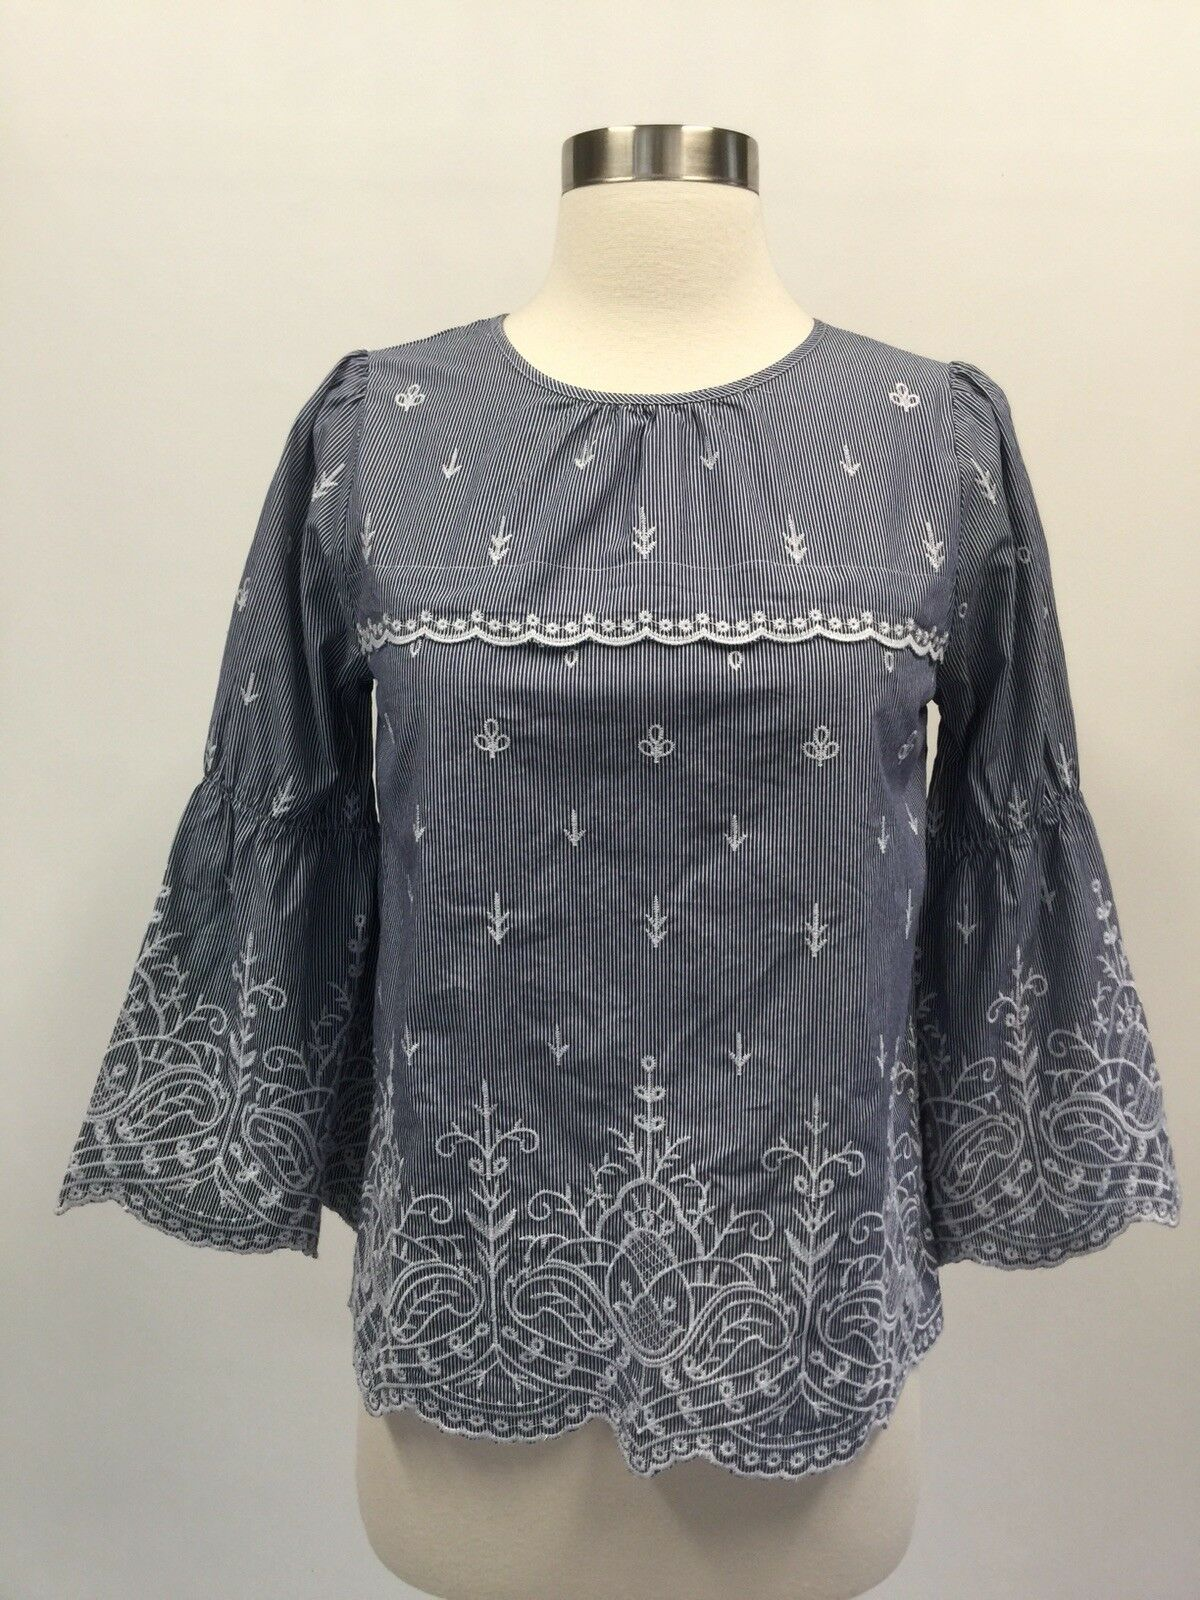 NWT J. Crew Petite embroidered bell-sleeve top in striped poplin XS PXS H6331